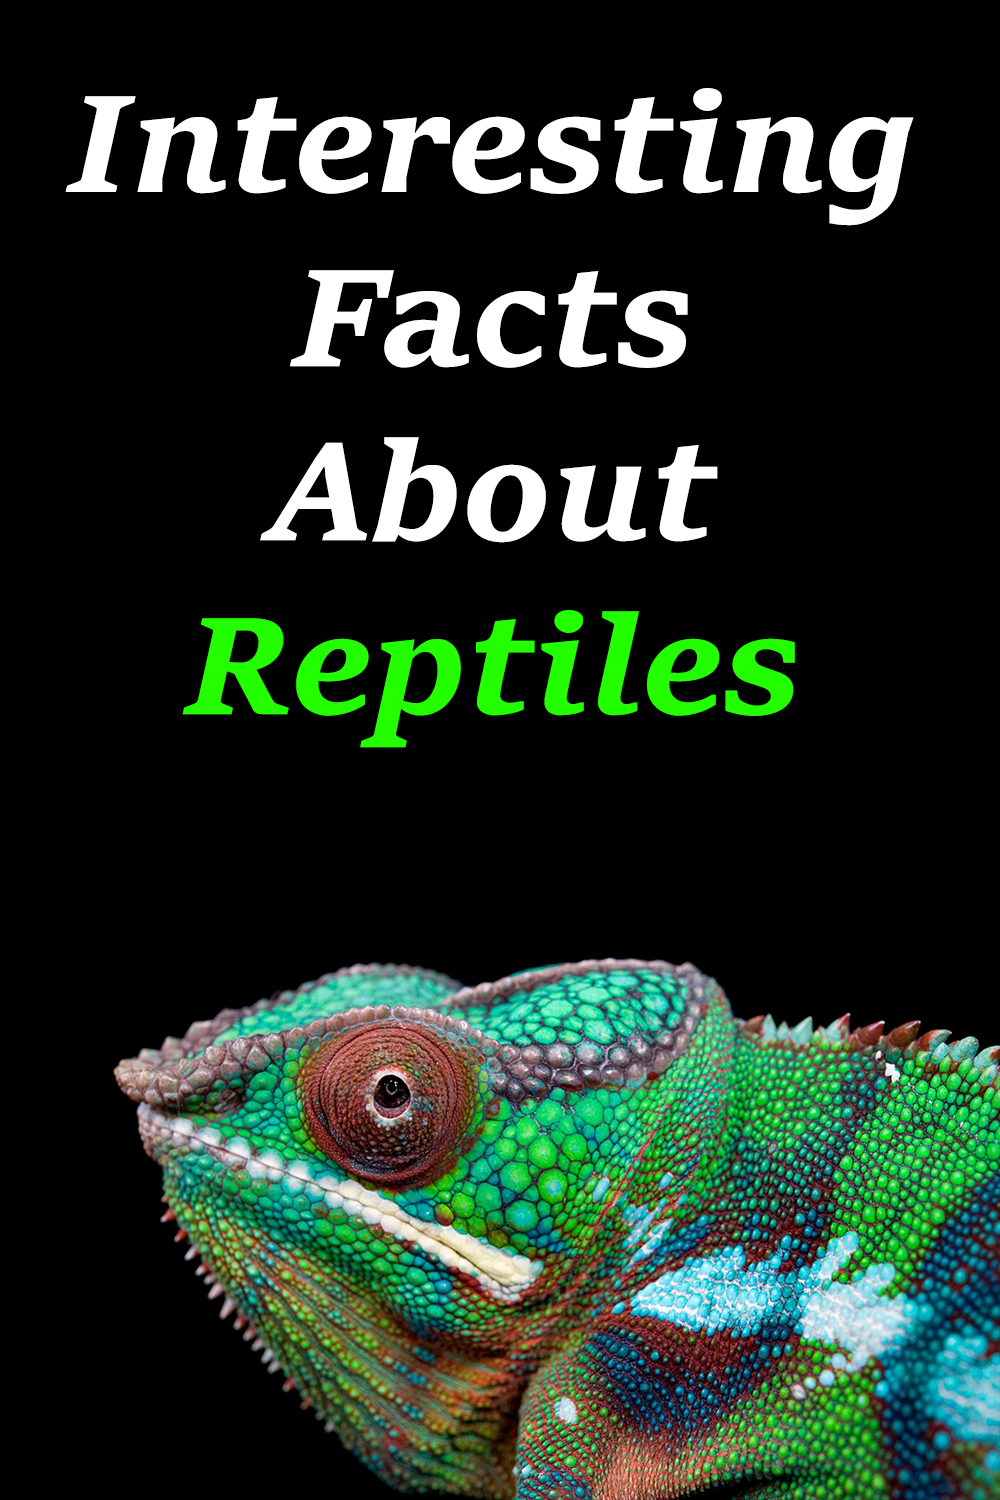 Interesting Facts About Reptiles Reptiles Reptiles Facts Reptiles Pet